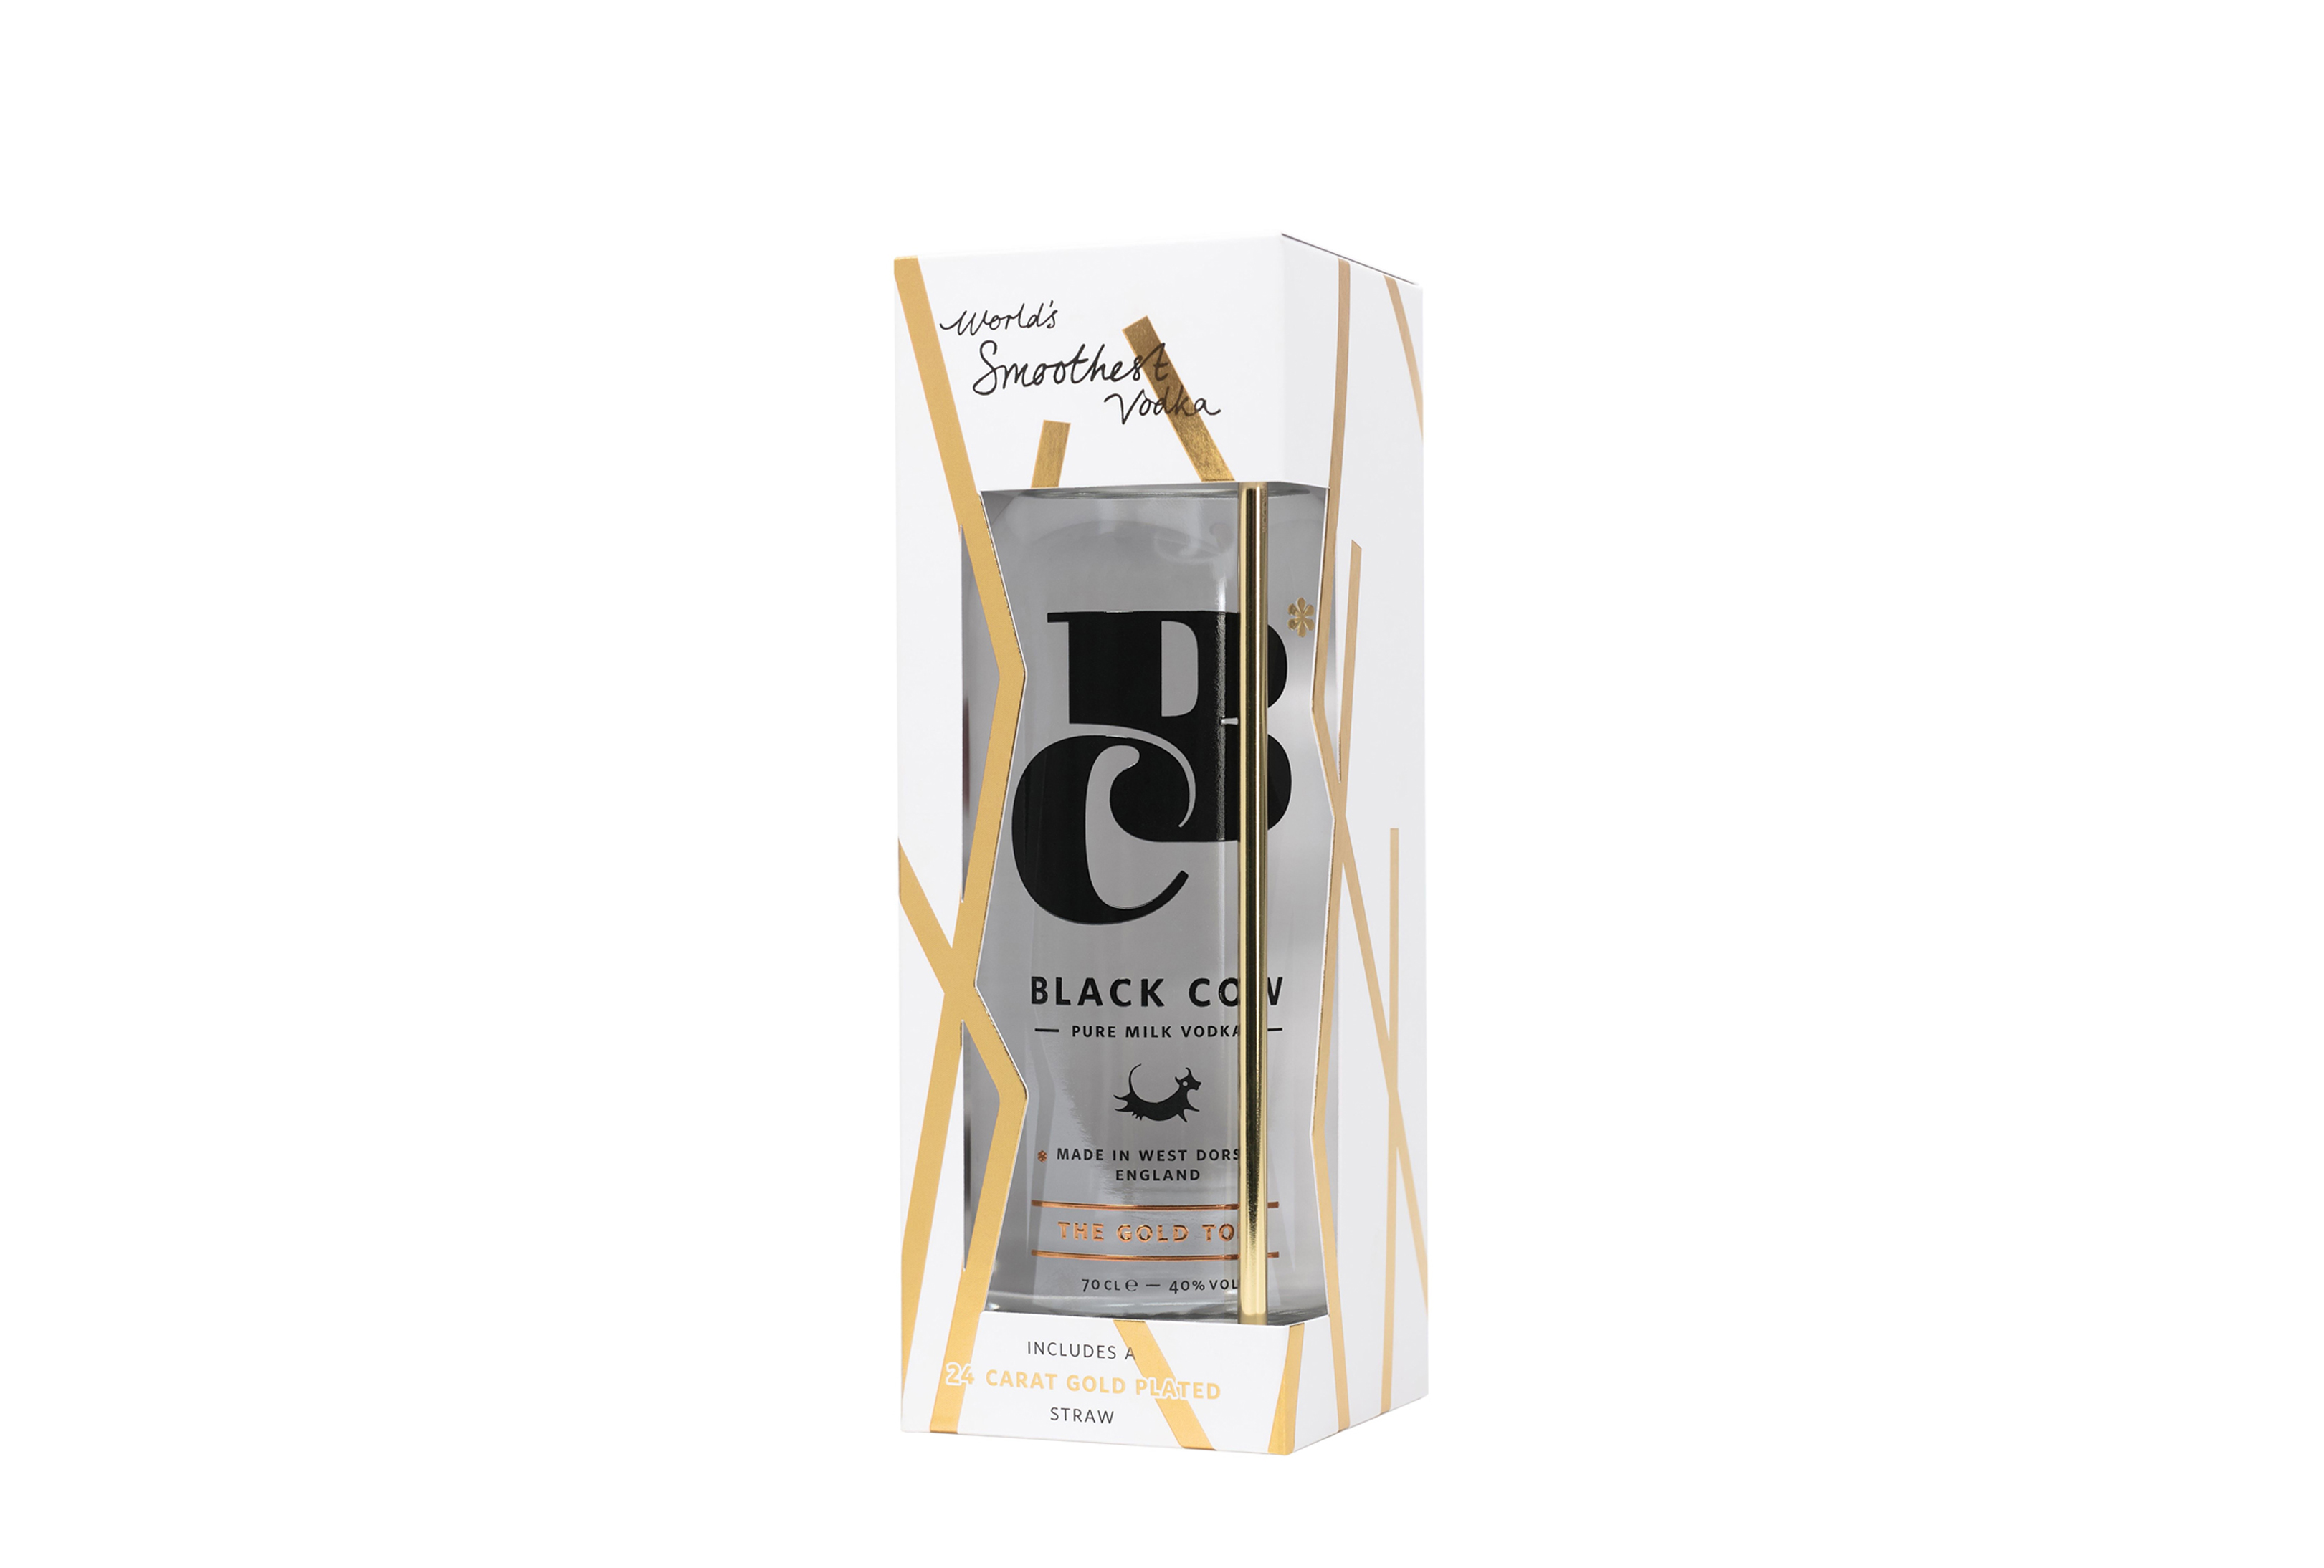 Black Cow Gold gift pack